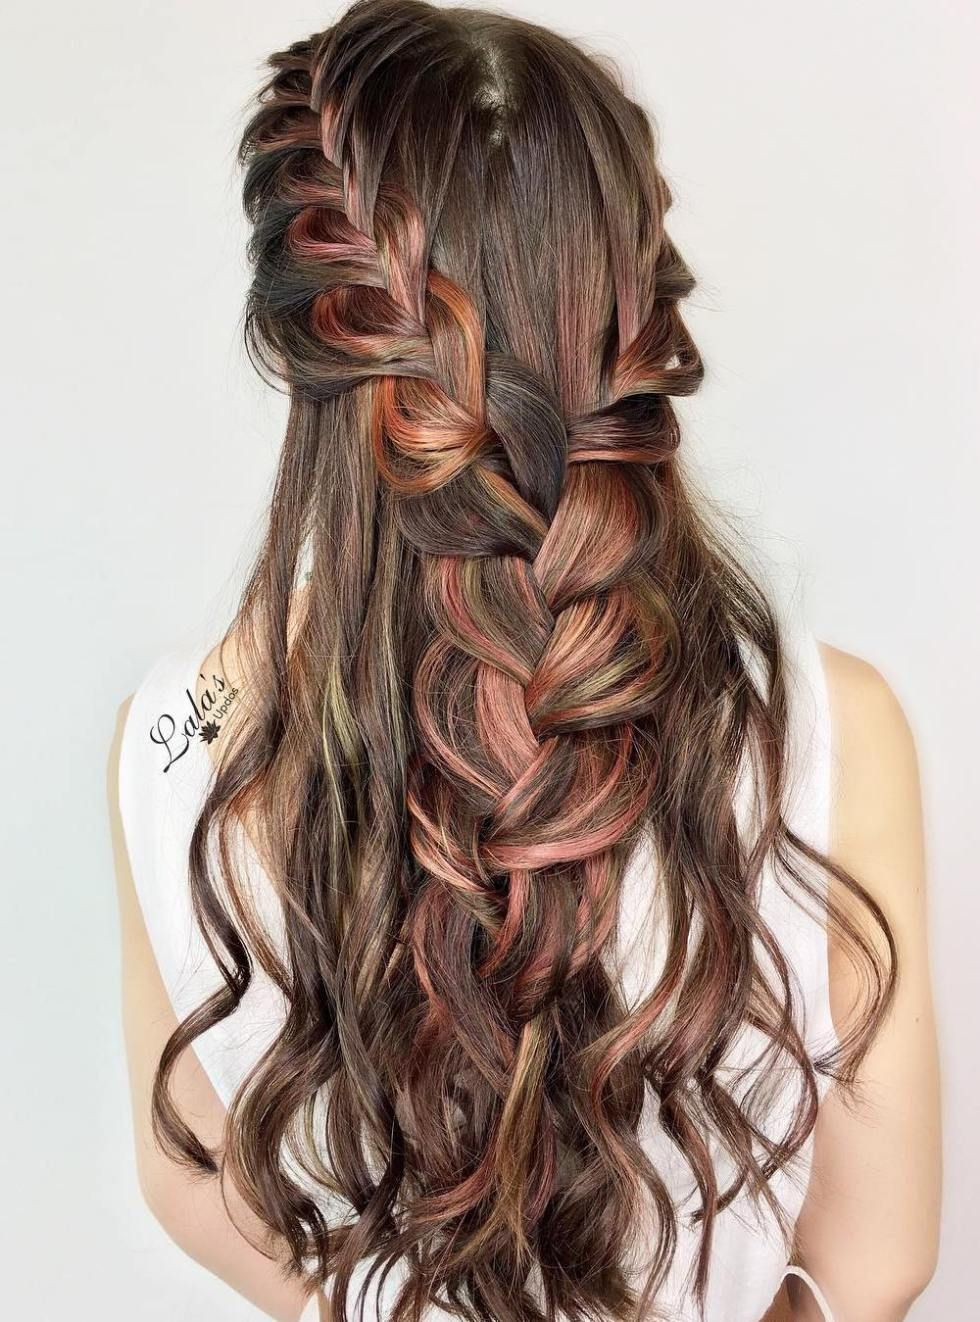 30 gorgeous braided hairstyles for long hair in 2019